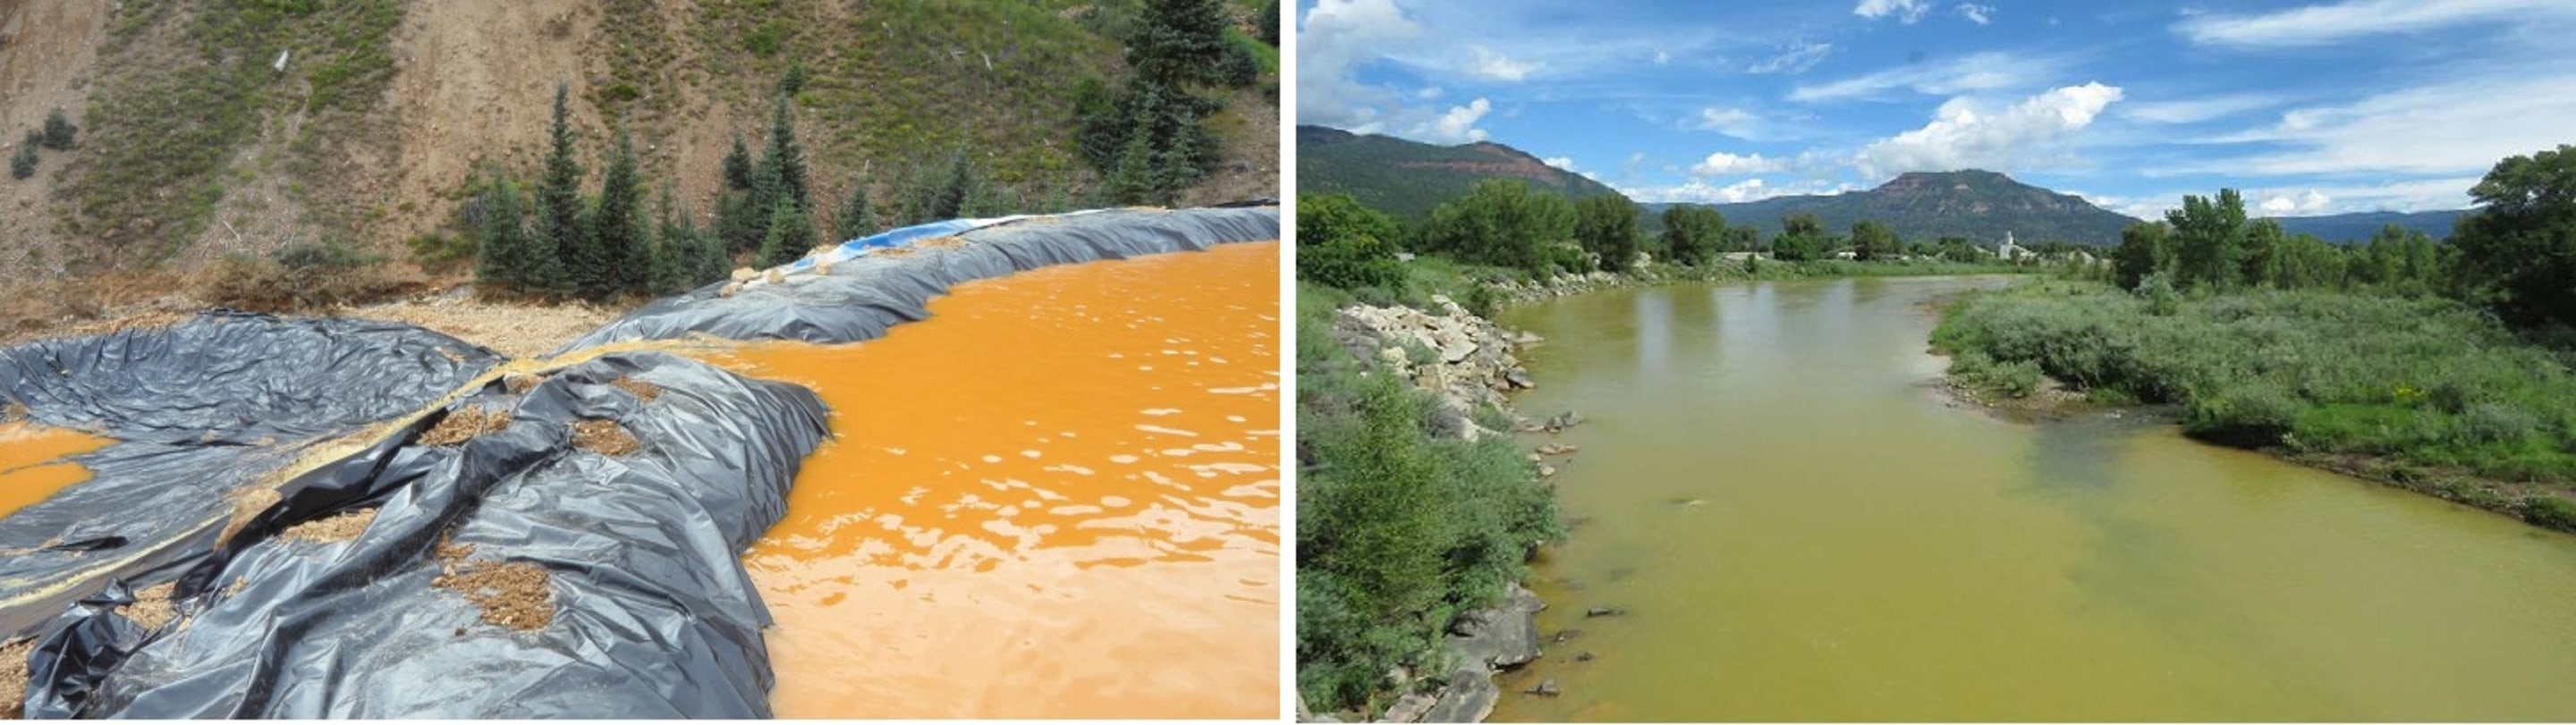 Colorado River Spill Early Tests Show Little Threat to Fish